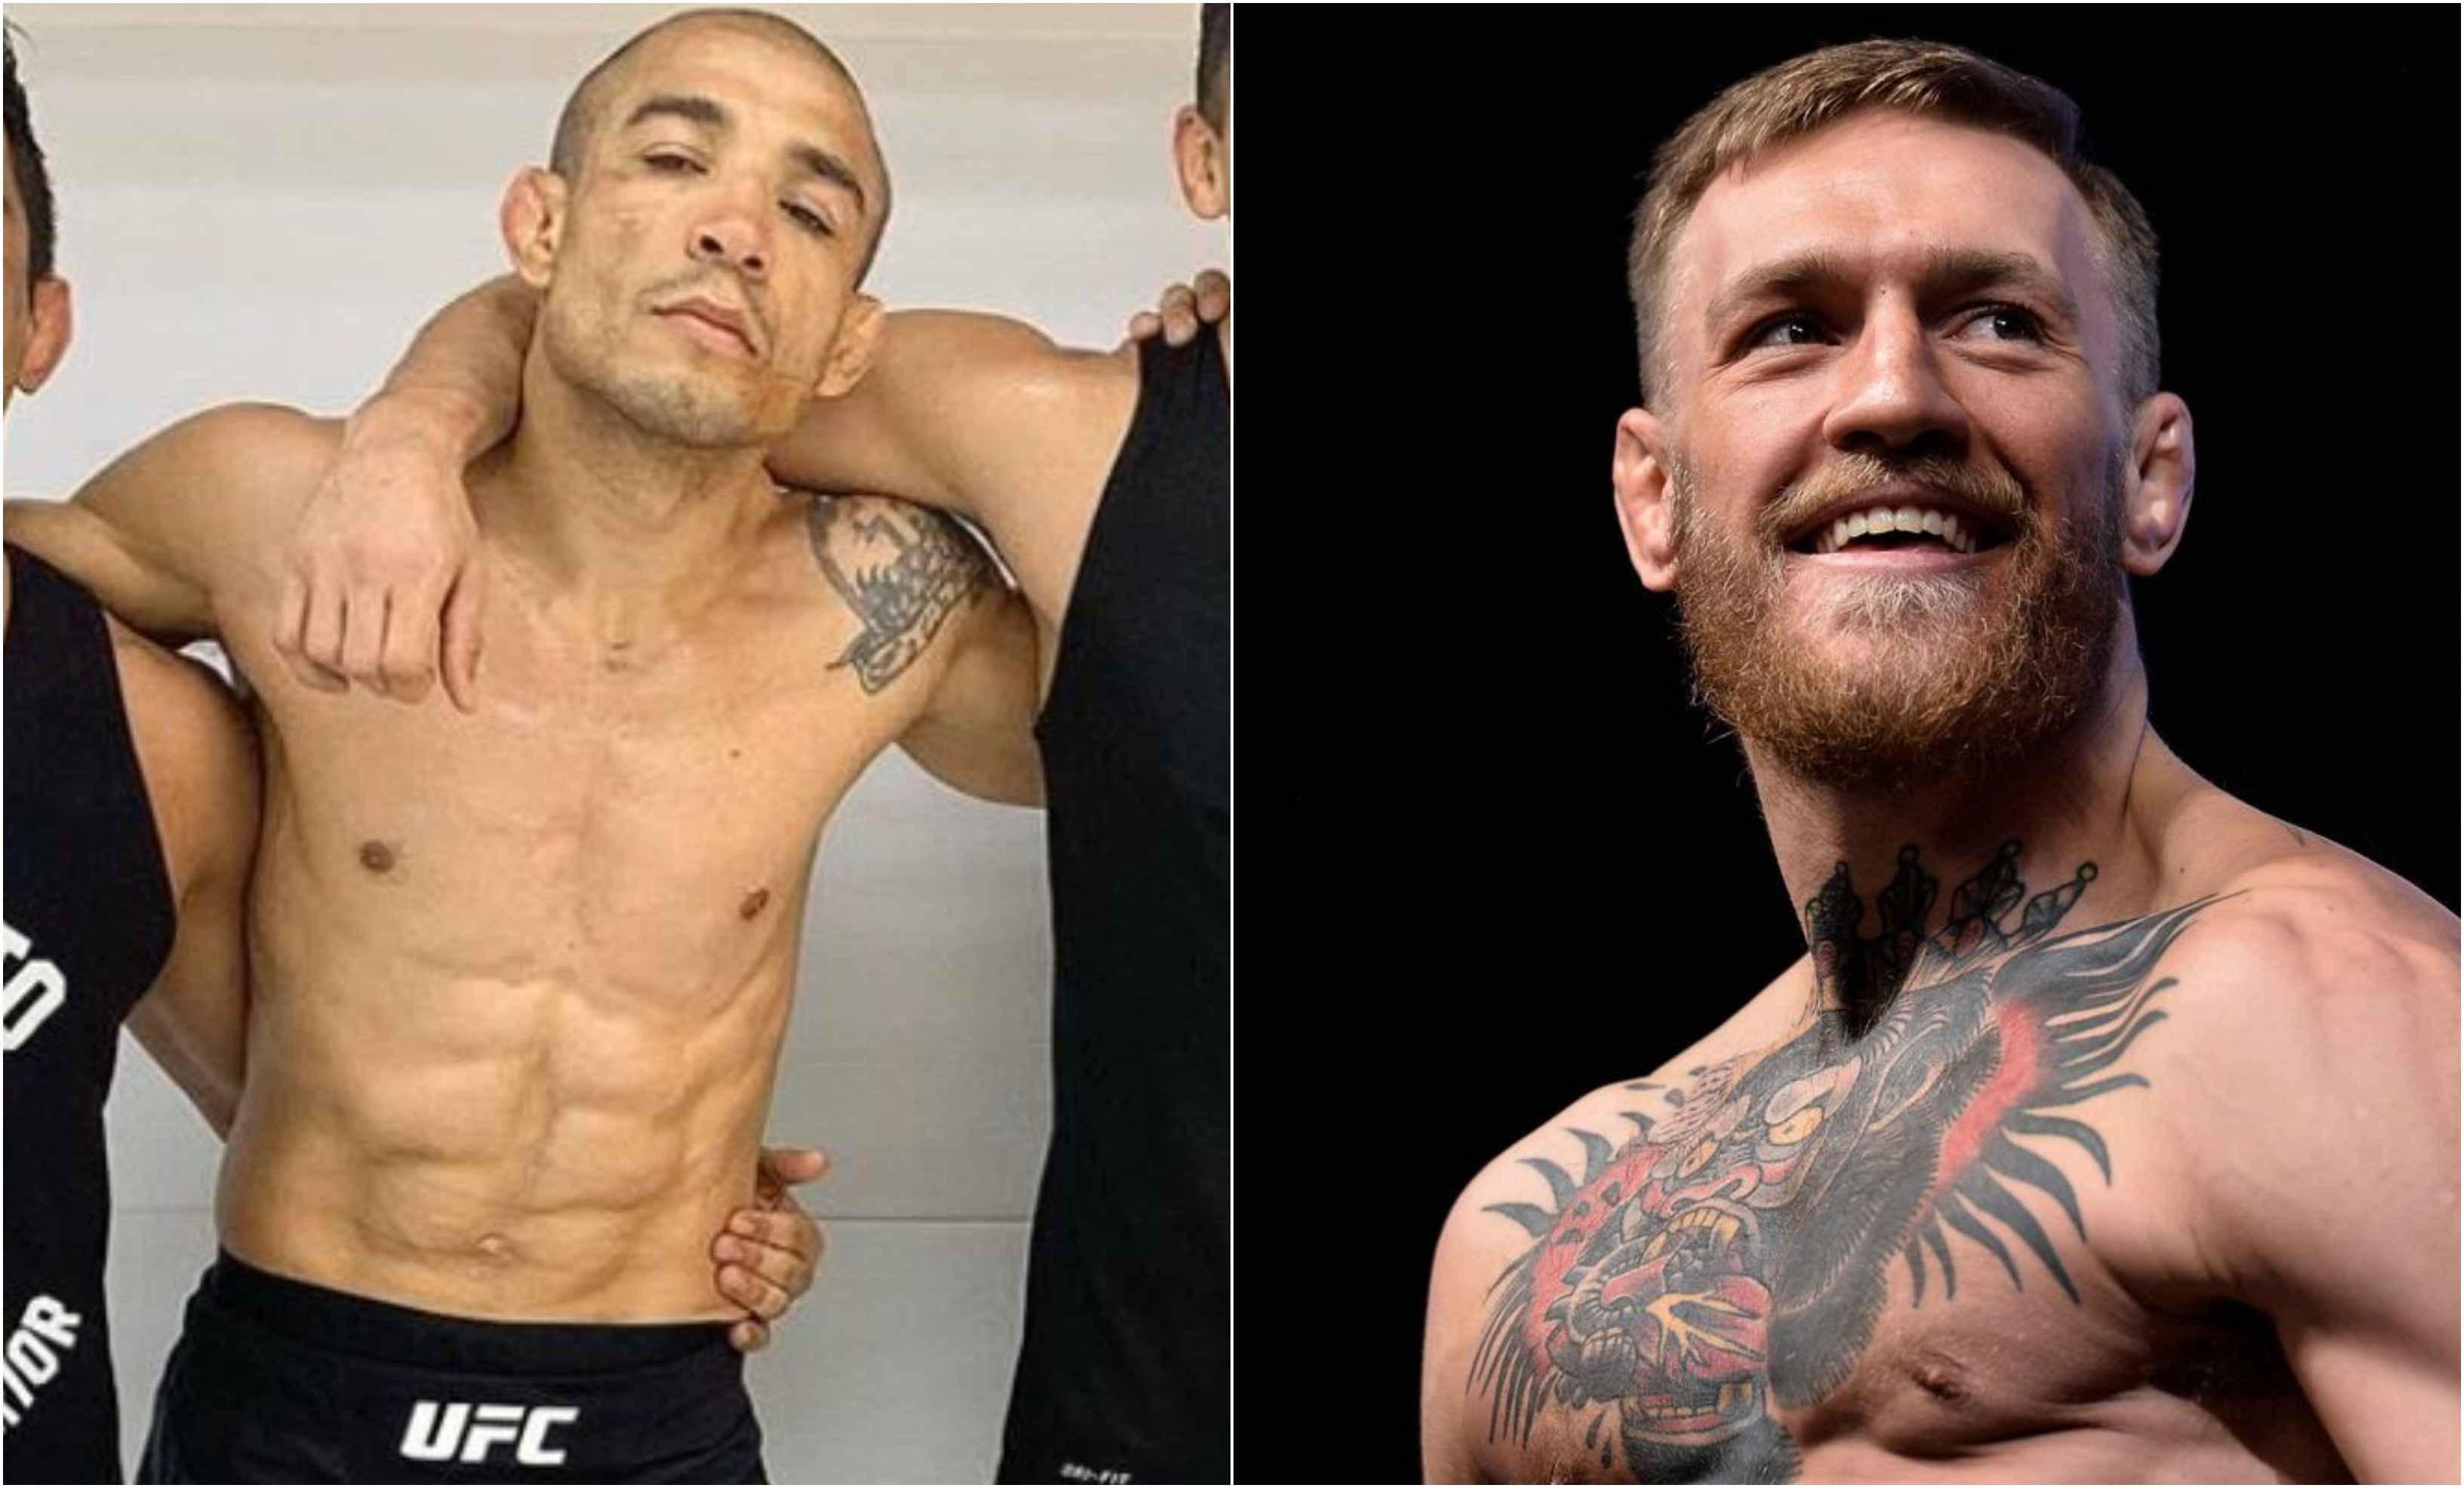 Conor McGregor praises and offers support to Jose Aldo ahead of Bantamweight debut at UFC 245 - Jose